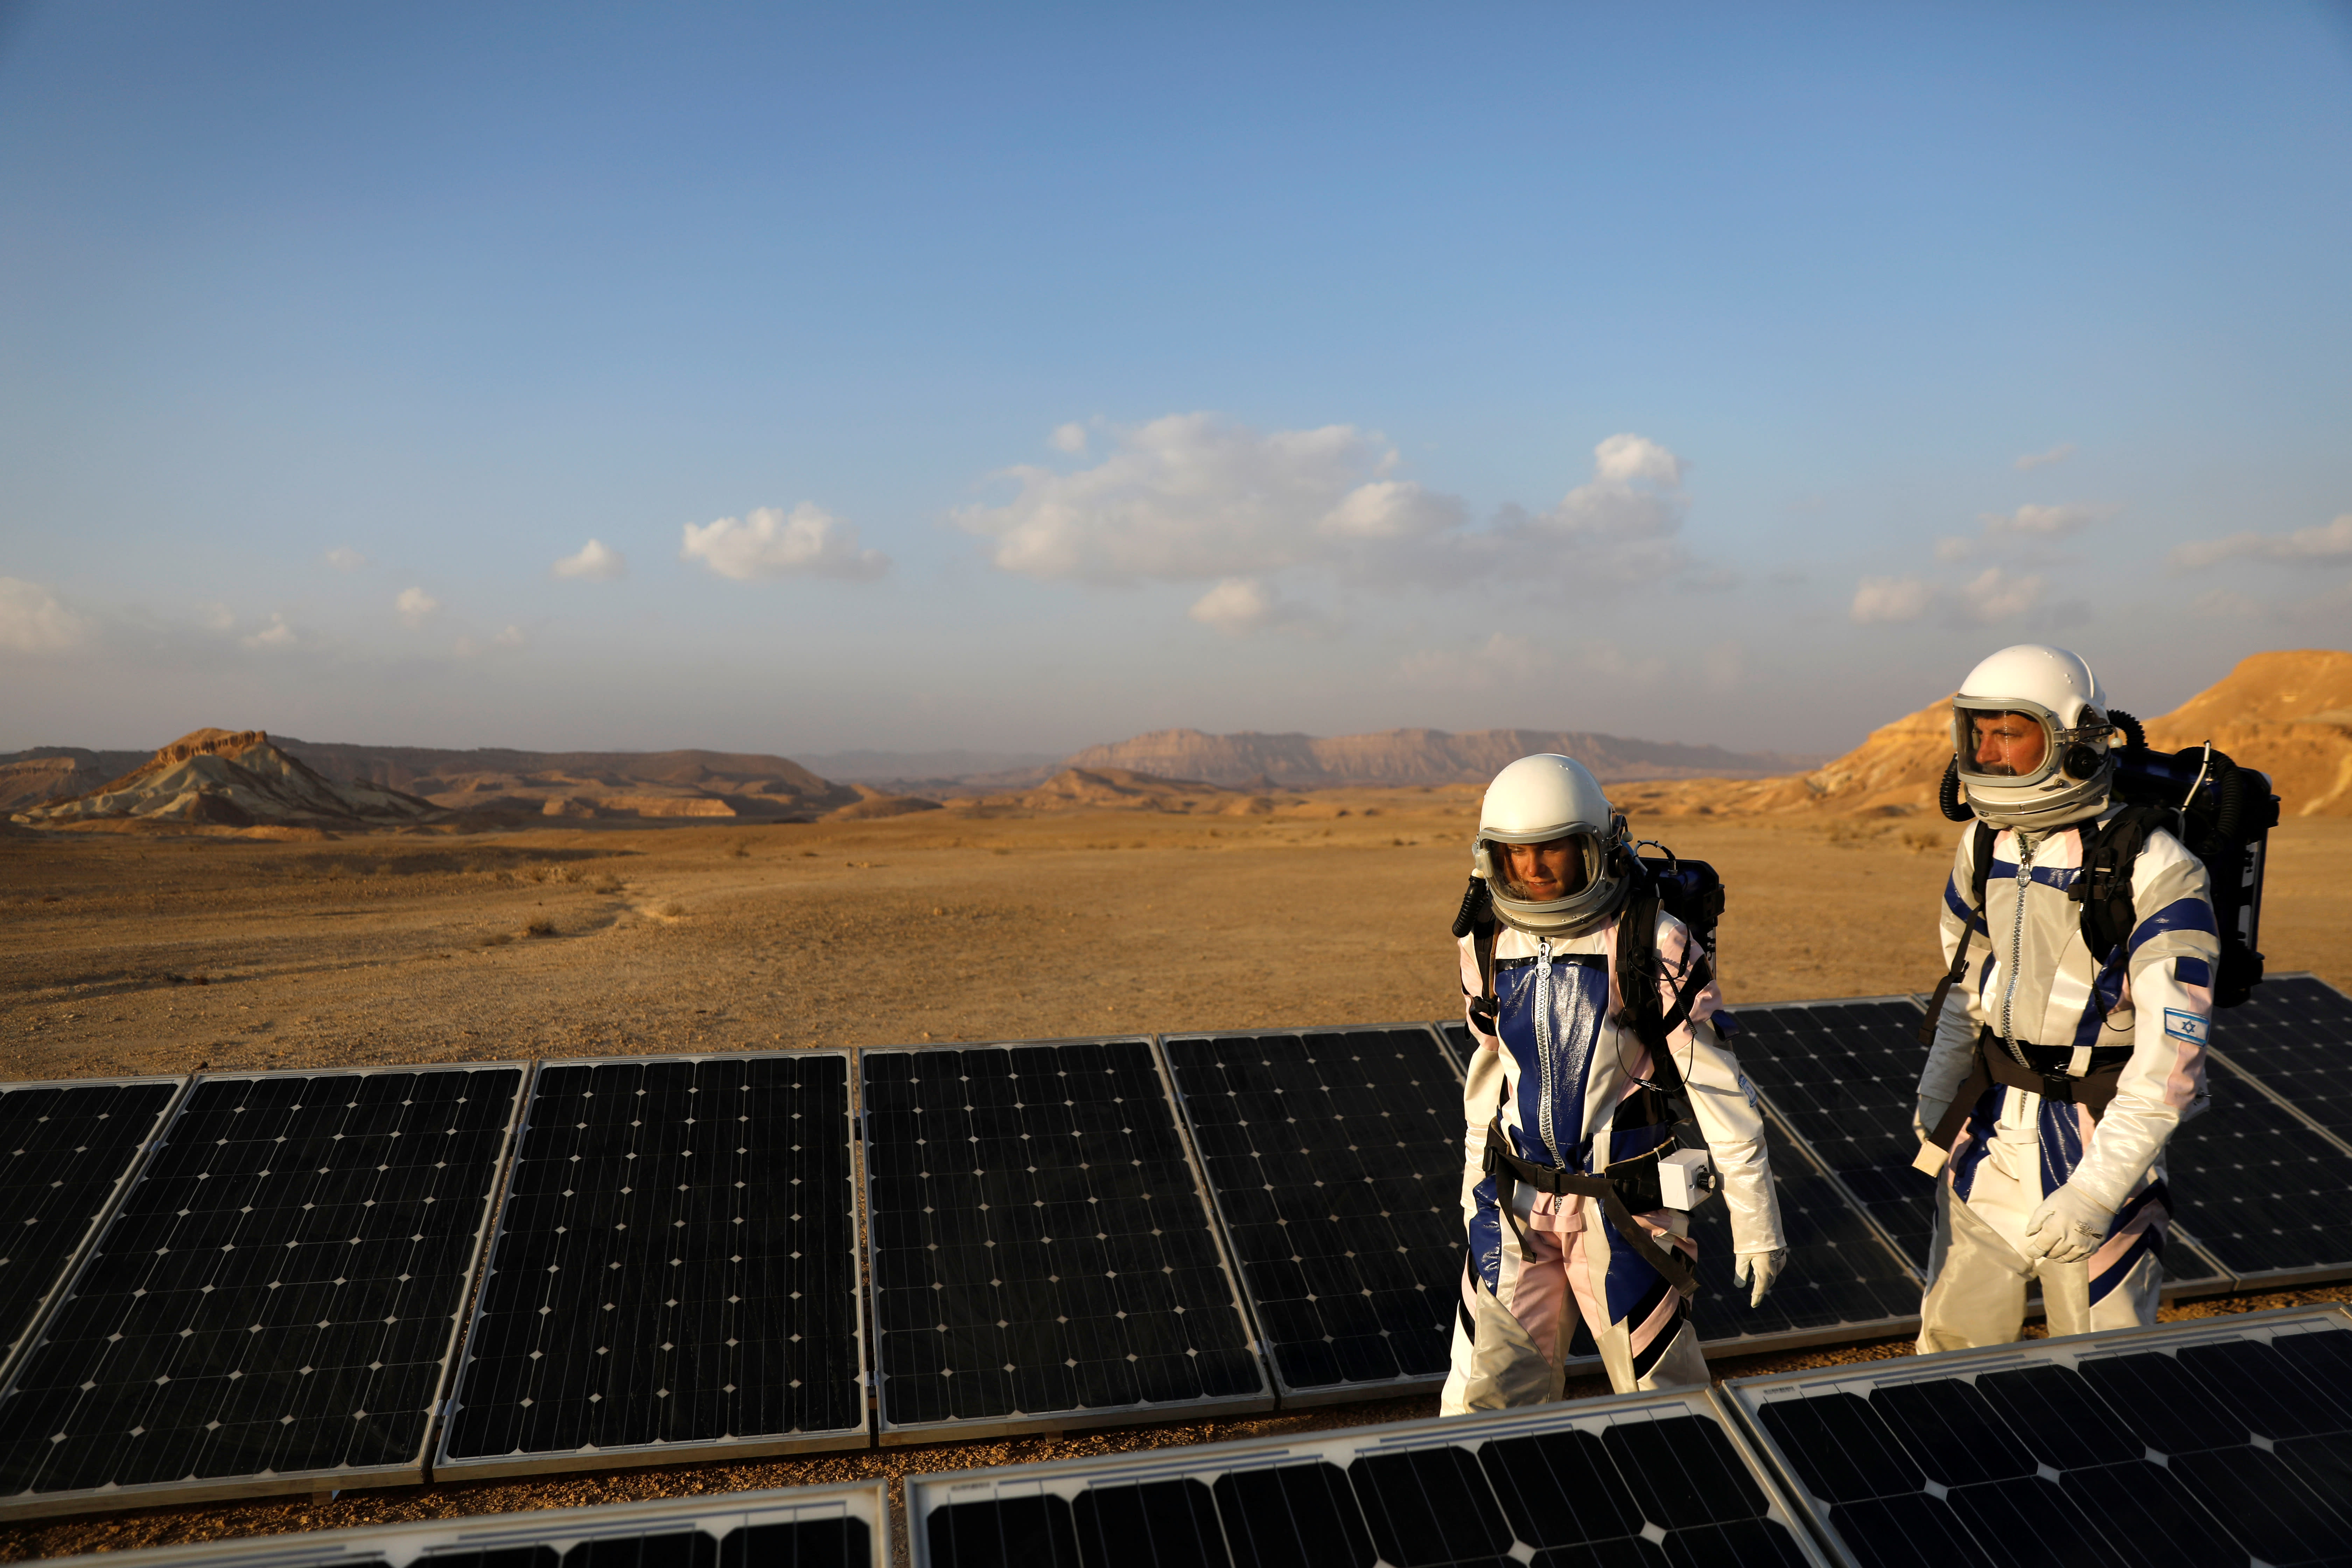 Israeli scientists participate in an experiment simulating a mission to Mars, at the D-MARS Desert Mars Analog Ramon Station project of Israel's Space Agency, Ministry of Science, near Mitzpe Ramon, Israel (RONEN ZVULUN/REUTERS)